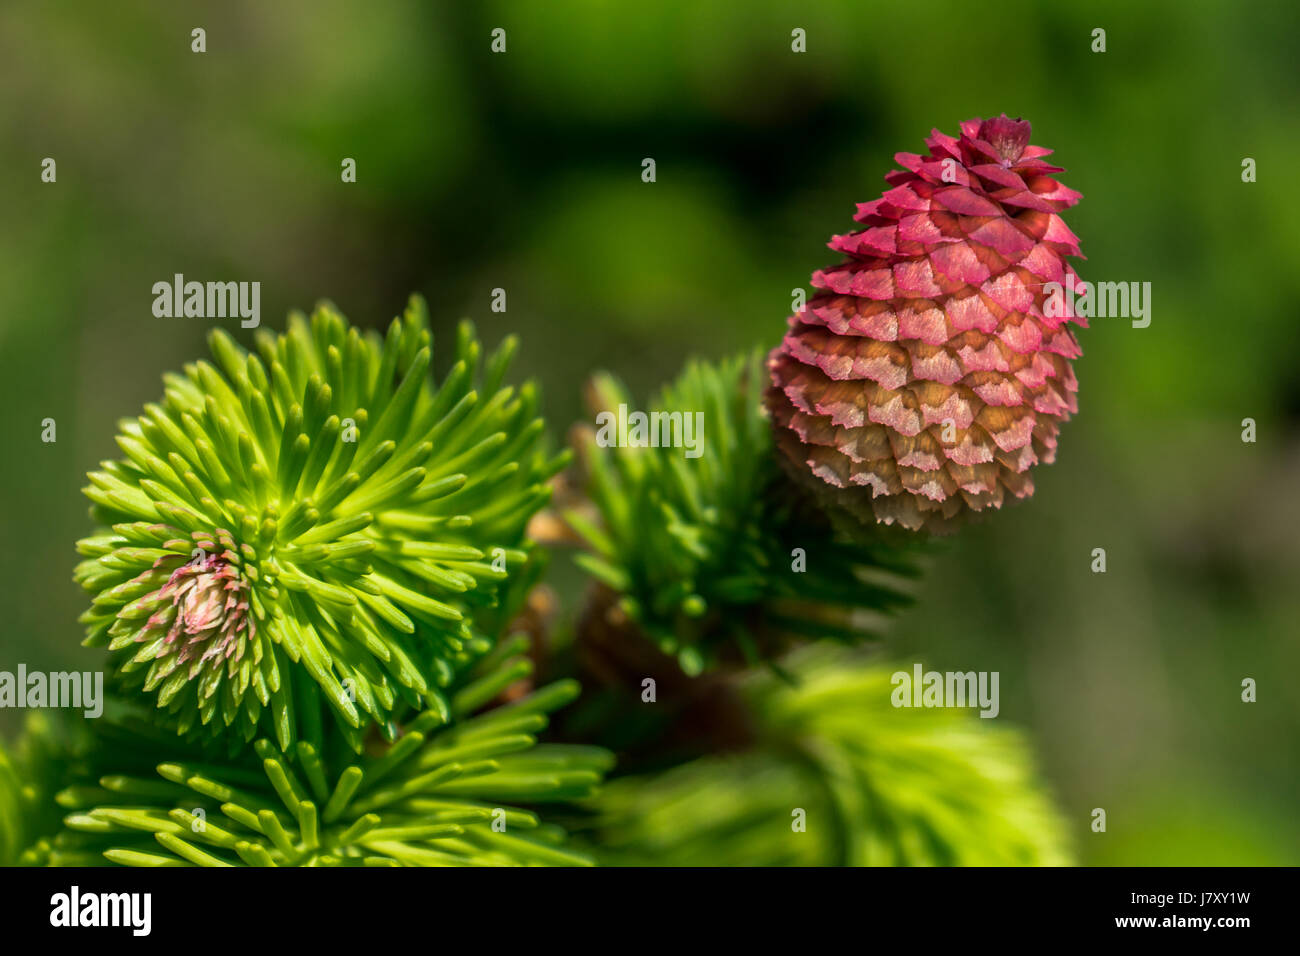 Bright pink cones of a Norway Spruce tree near the Stanley Park Pavilion in Vancouver, BC - Stock Image